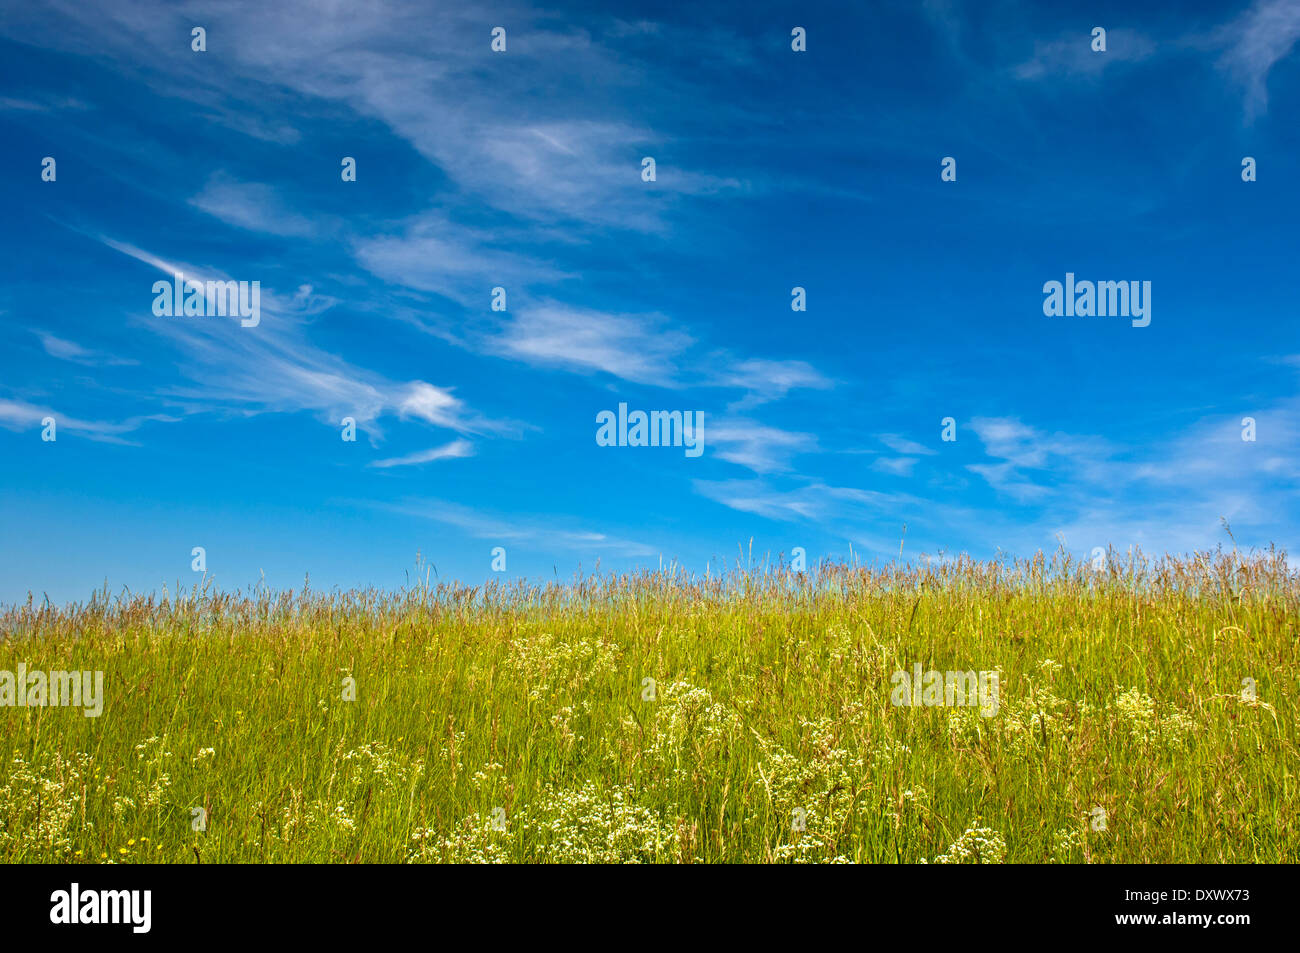 Blue sky with cirrus clouds above a summer meadow, Baden-Württemberg, Germany - Stock Image